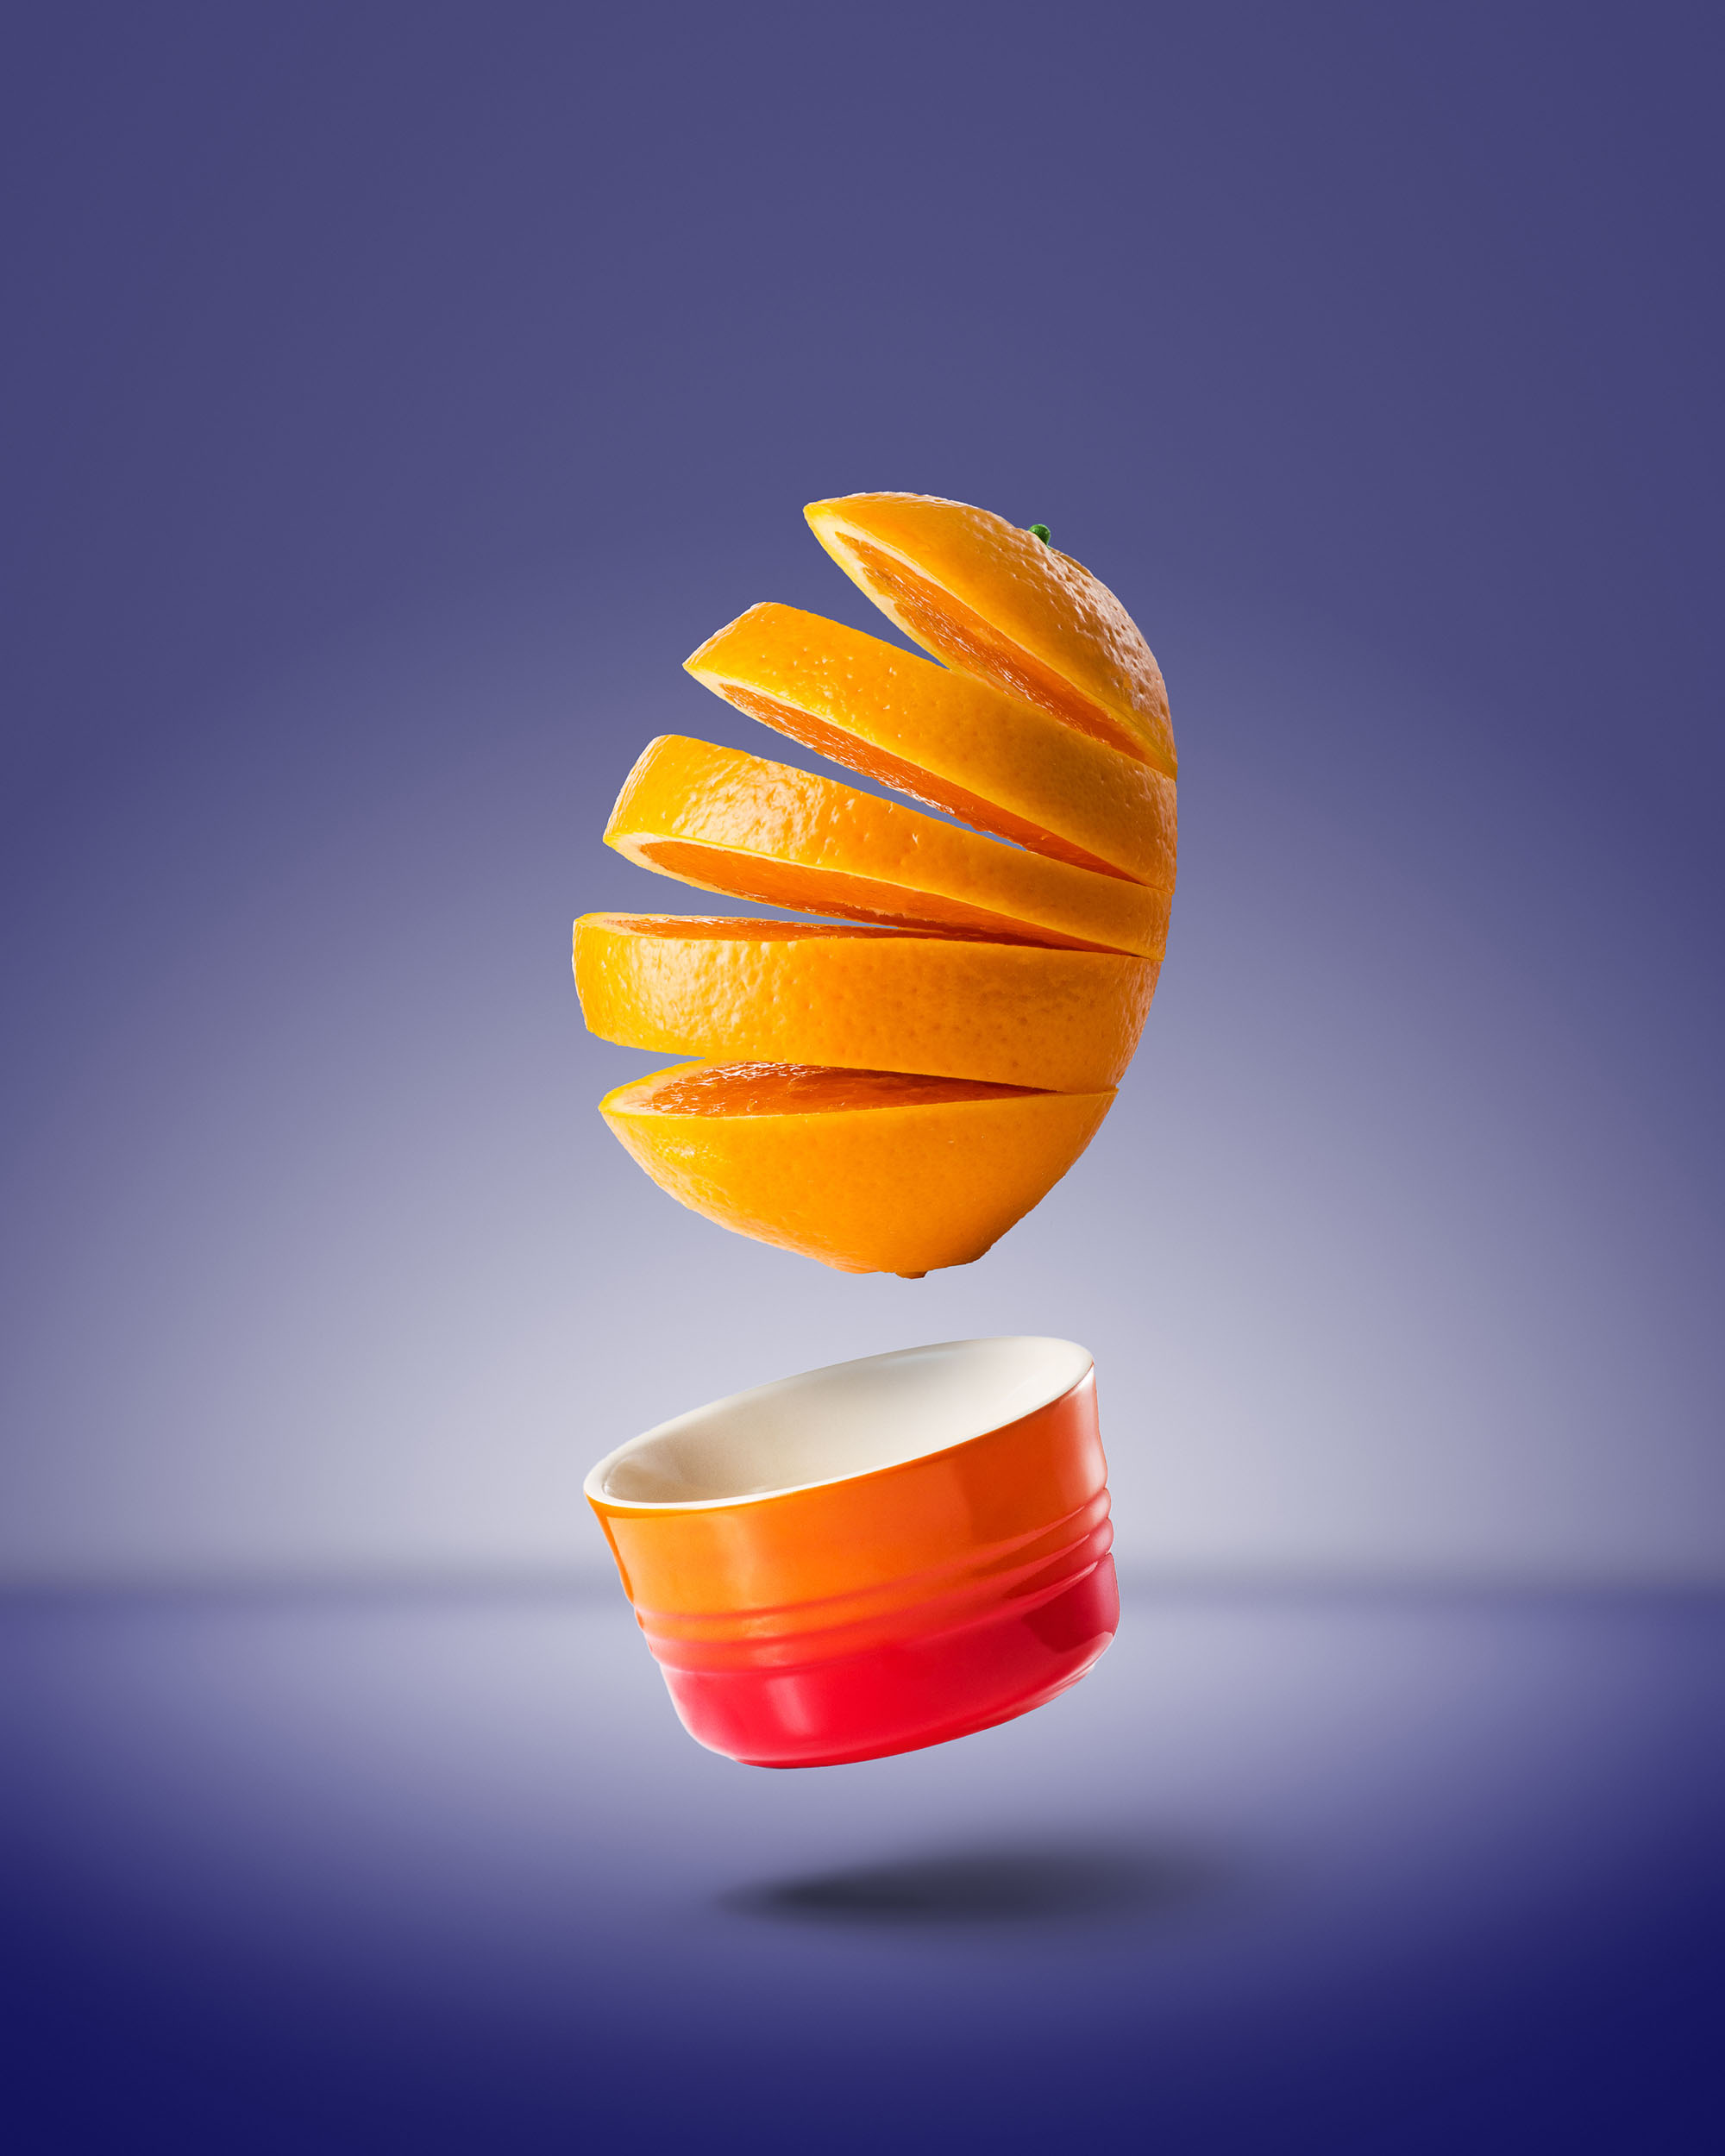 Ian Knaggs Commercial Still Life Photographer - Floating Orange